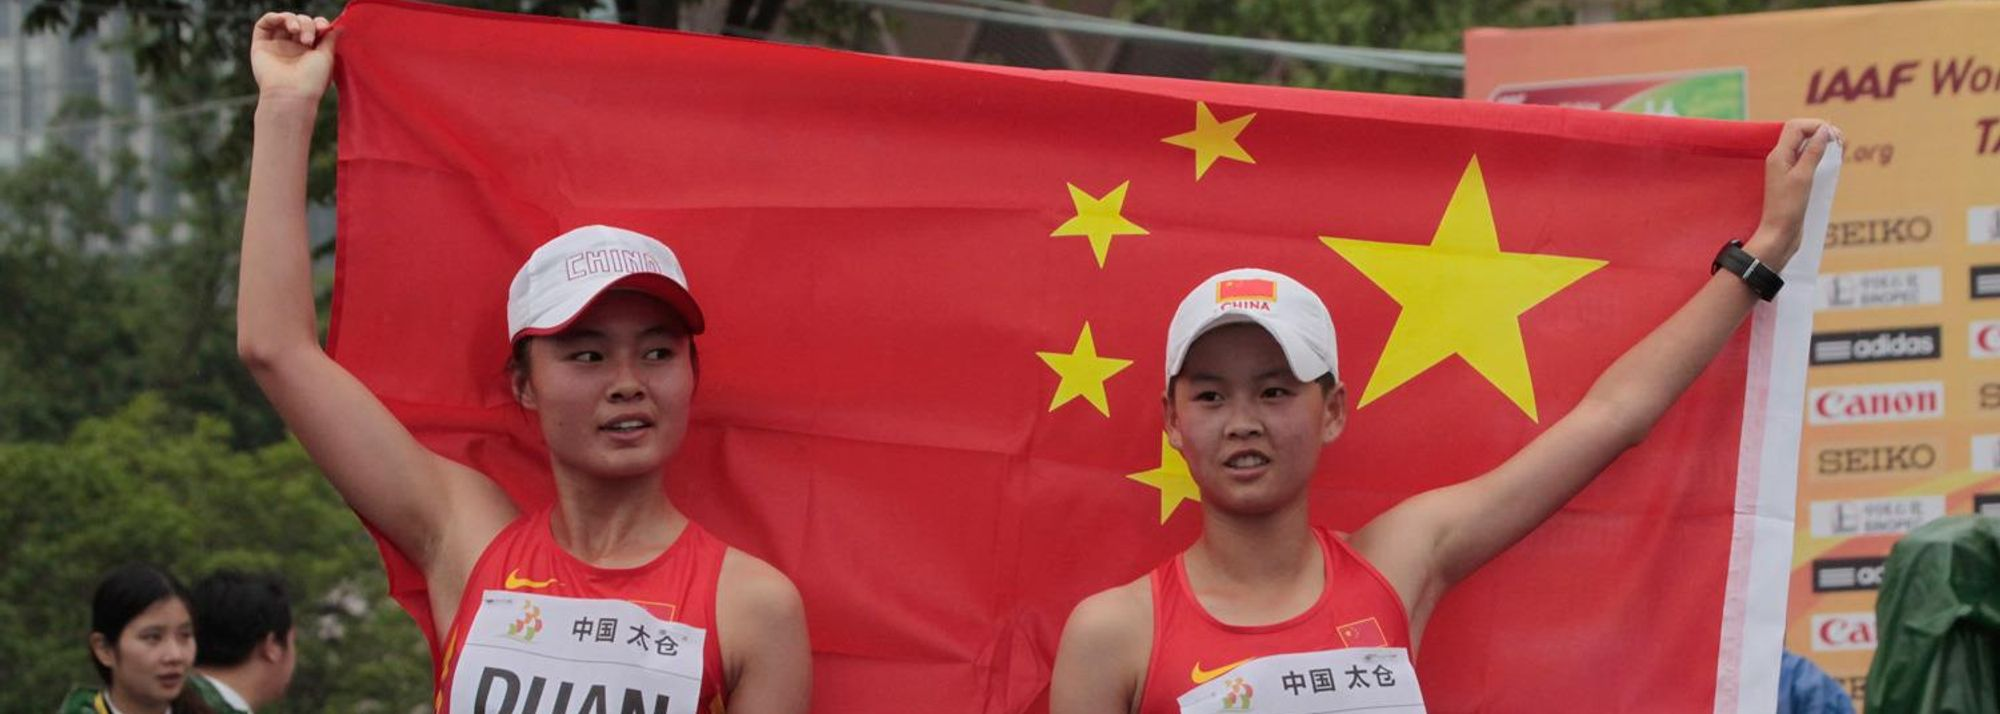 Duan Dandan and Yang Jiayu started the day off in magnificent fashion for the host of the 2014 IAAF World Race Walking Cup as the Chinese pair took gold and silver in the junior women's 10km on Sunday (4).